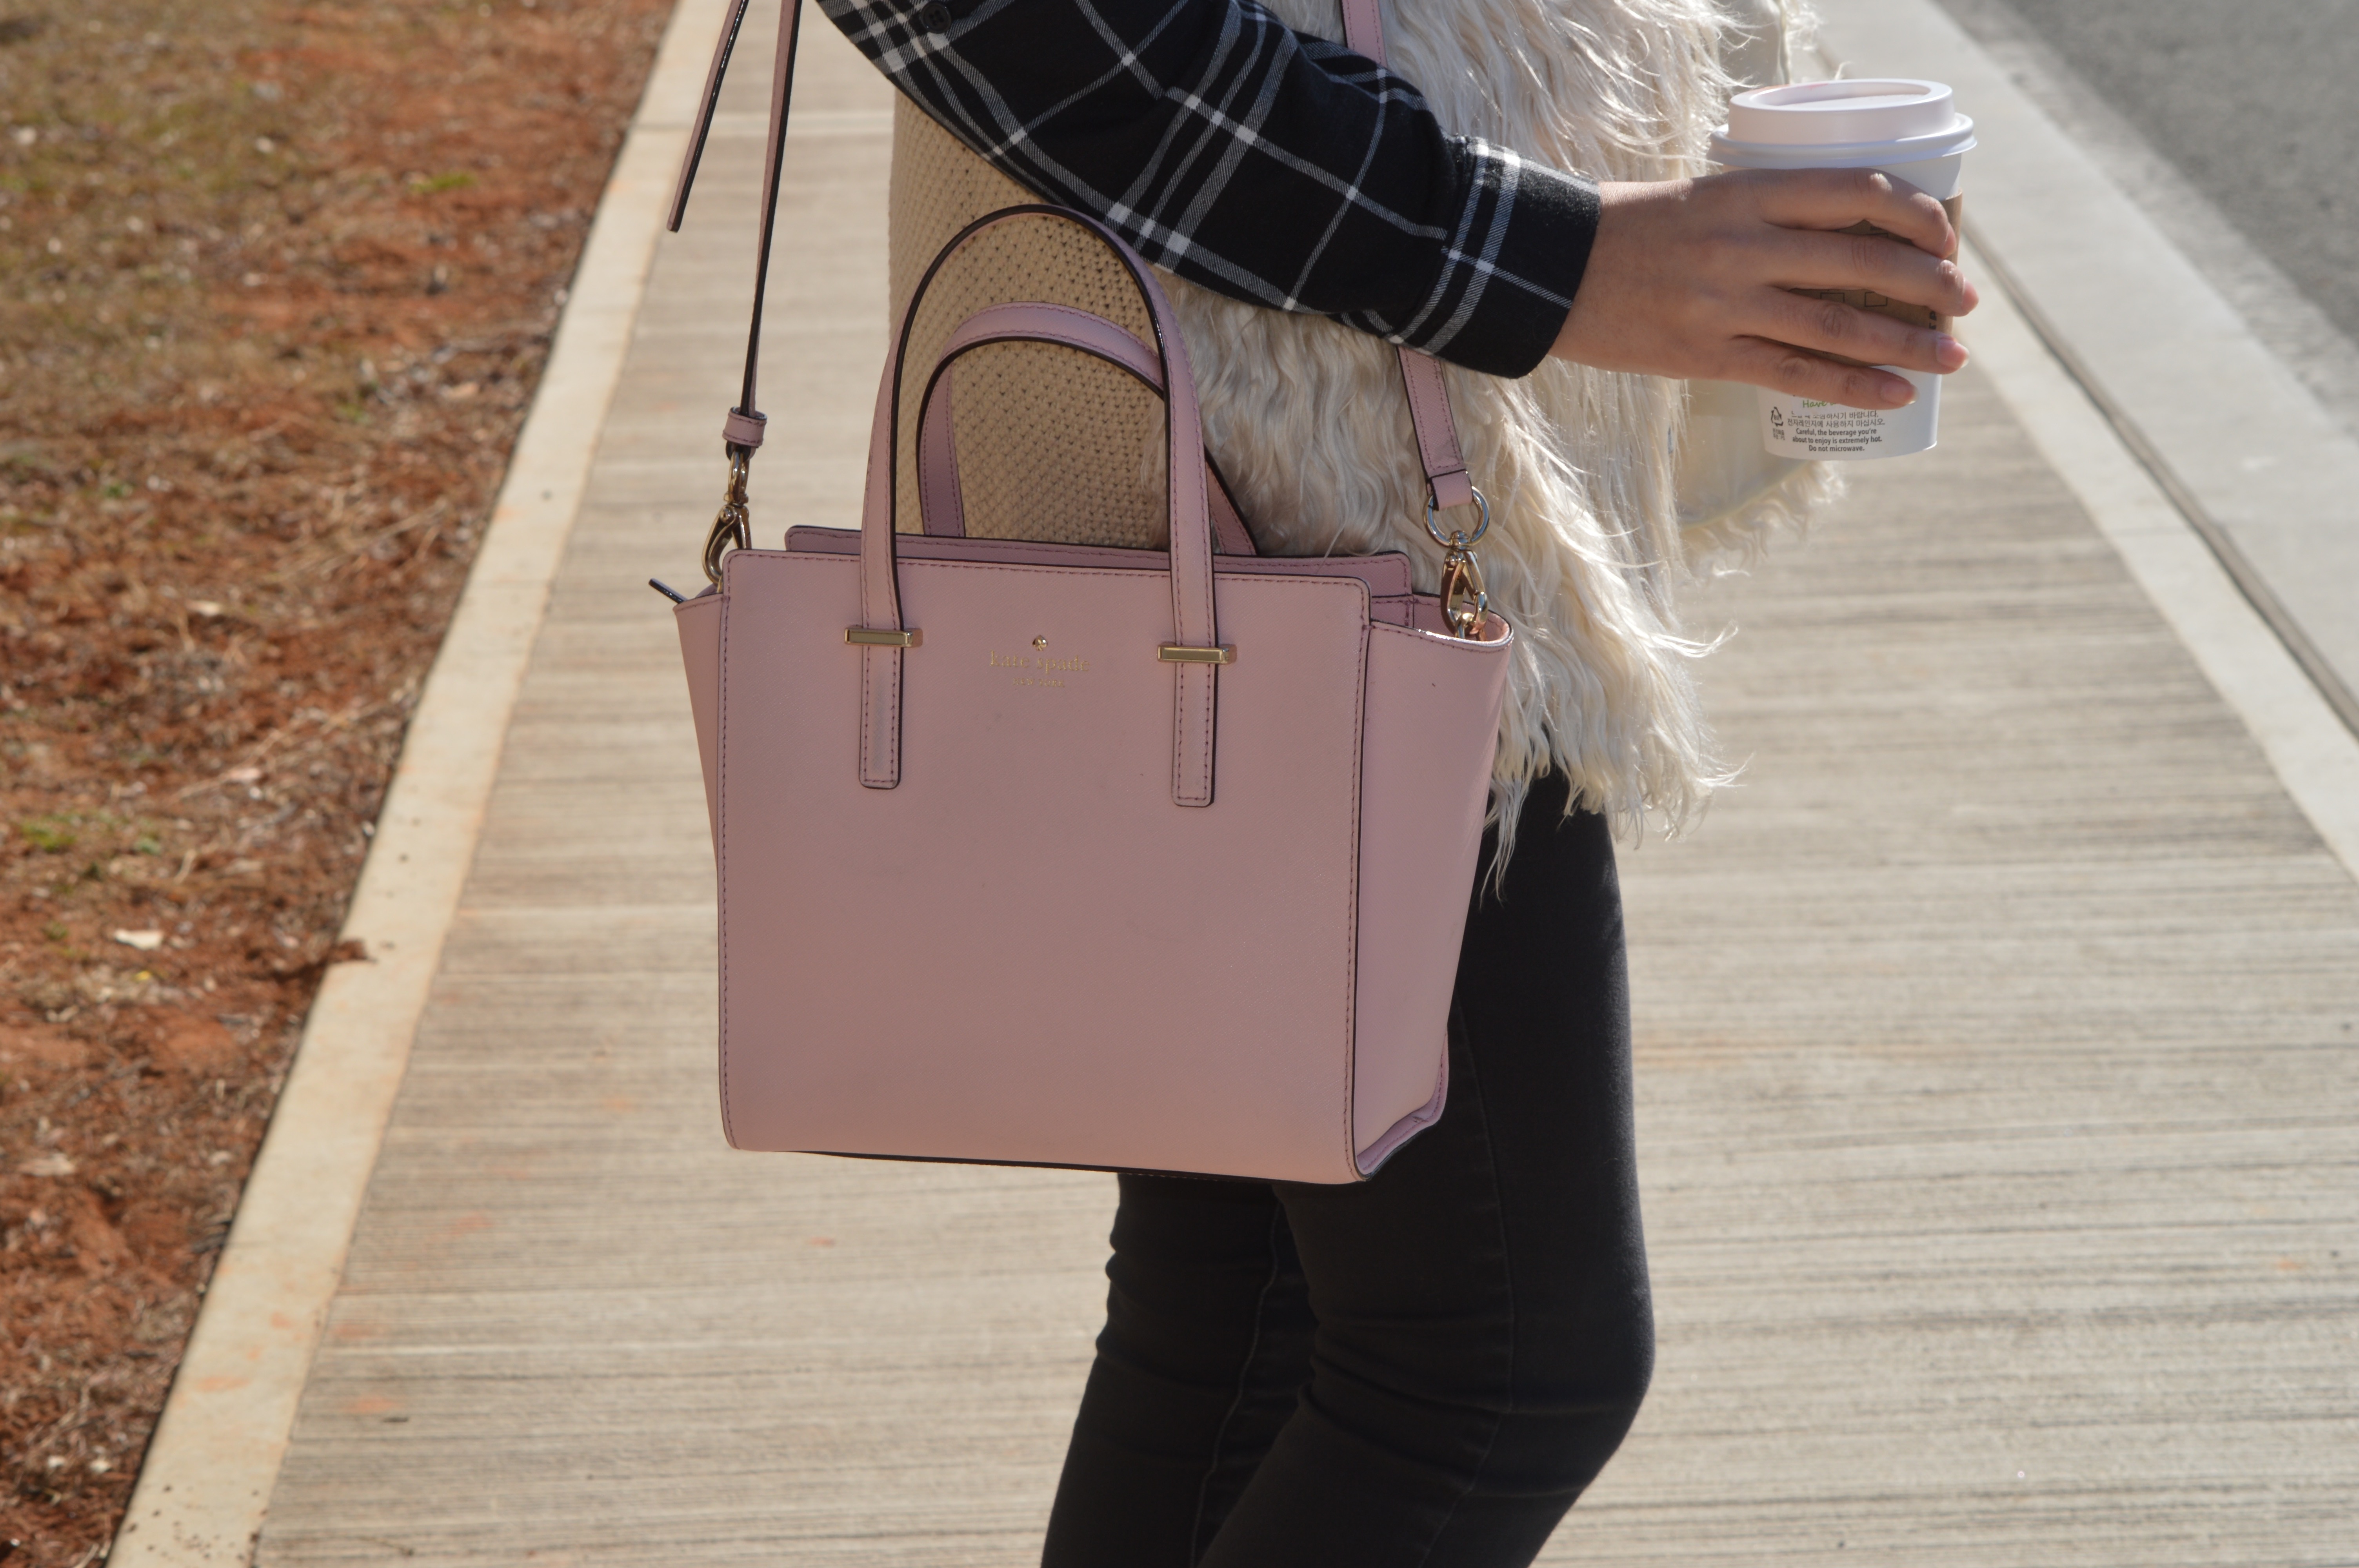 Kate Spade, designer bags, what to wear, hot to fashion blog